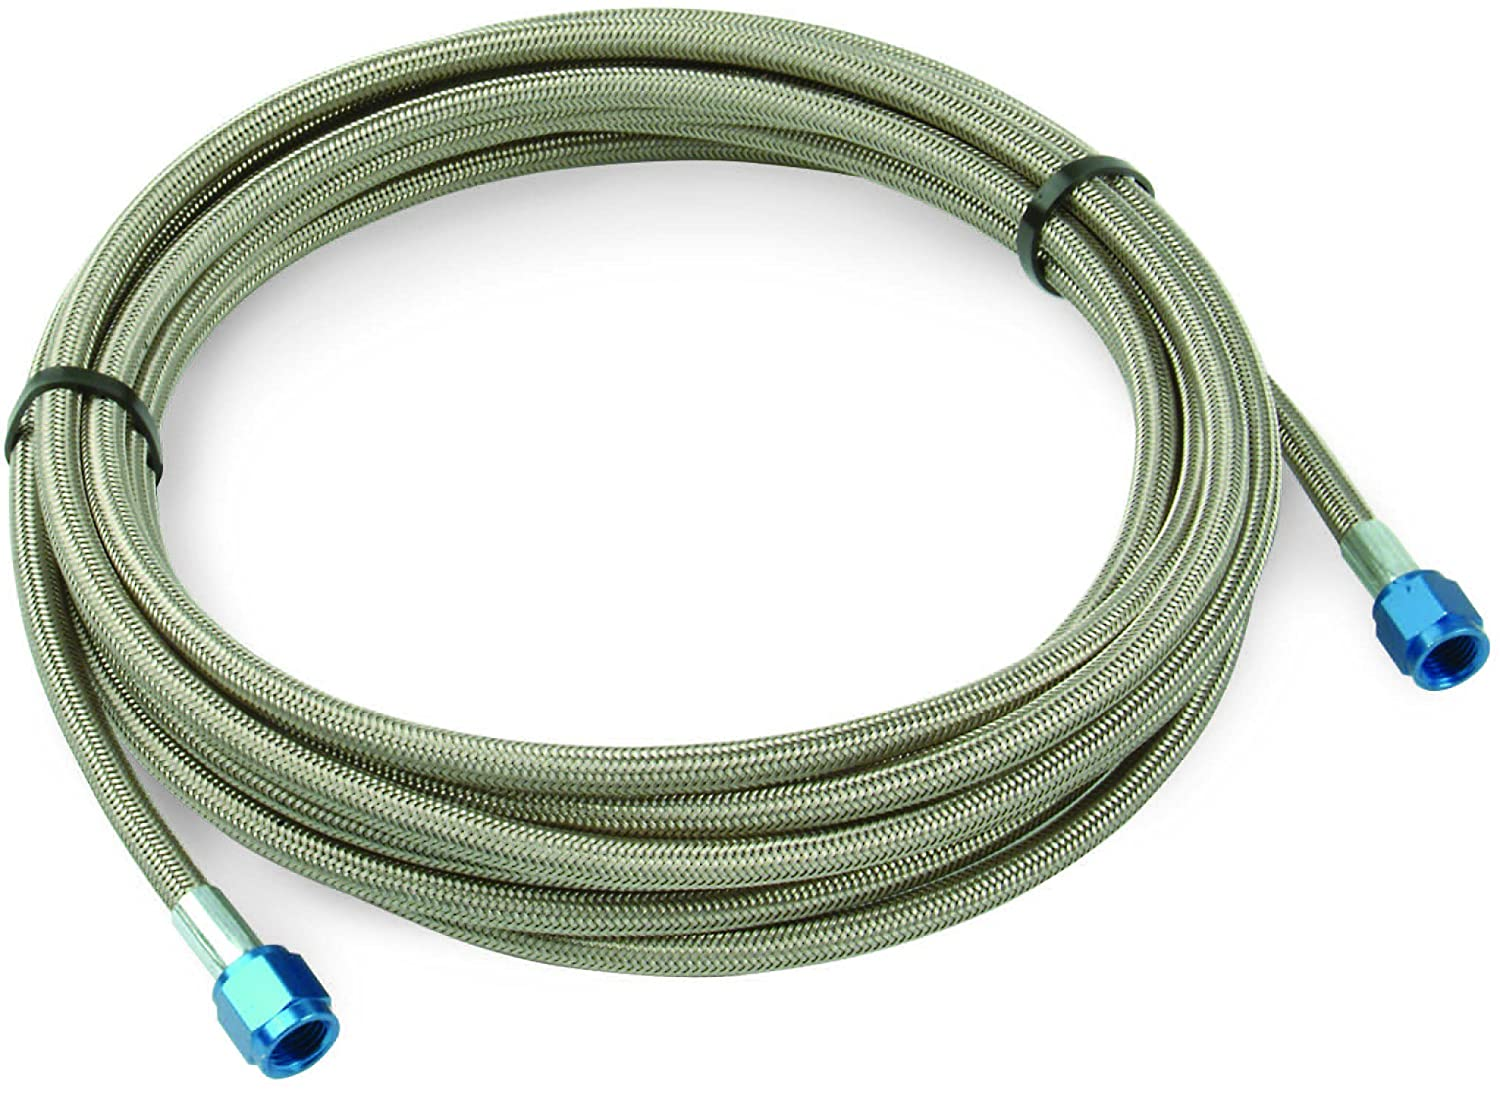 Design Engineering 080205 CryO2 Stainless Steel Braided Hose, 4AN Female x 1/8 NPT Male, 3' 3'